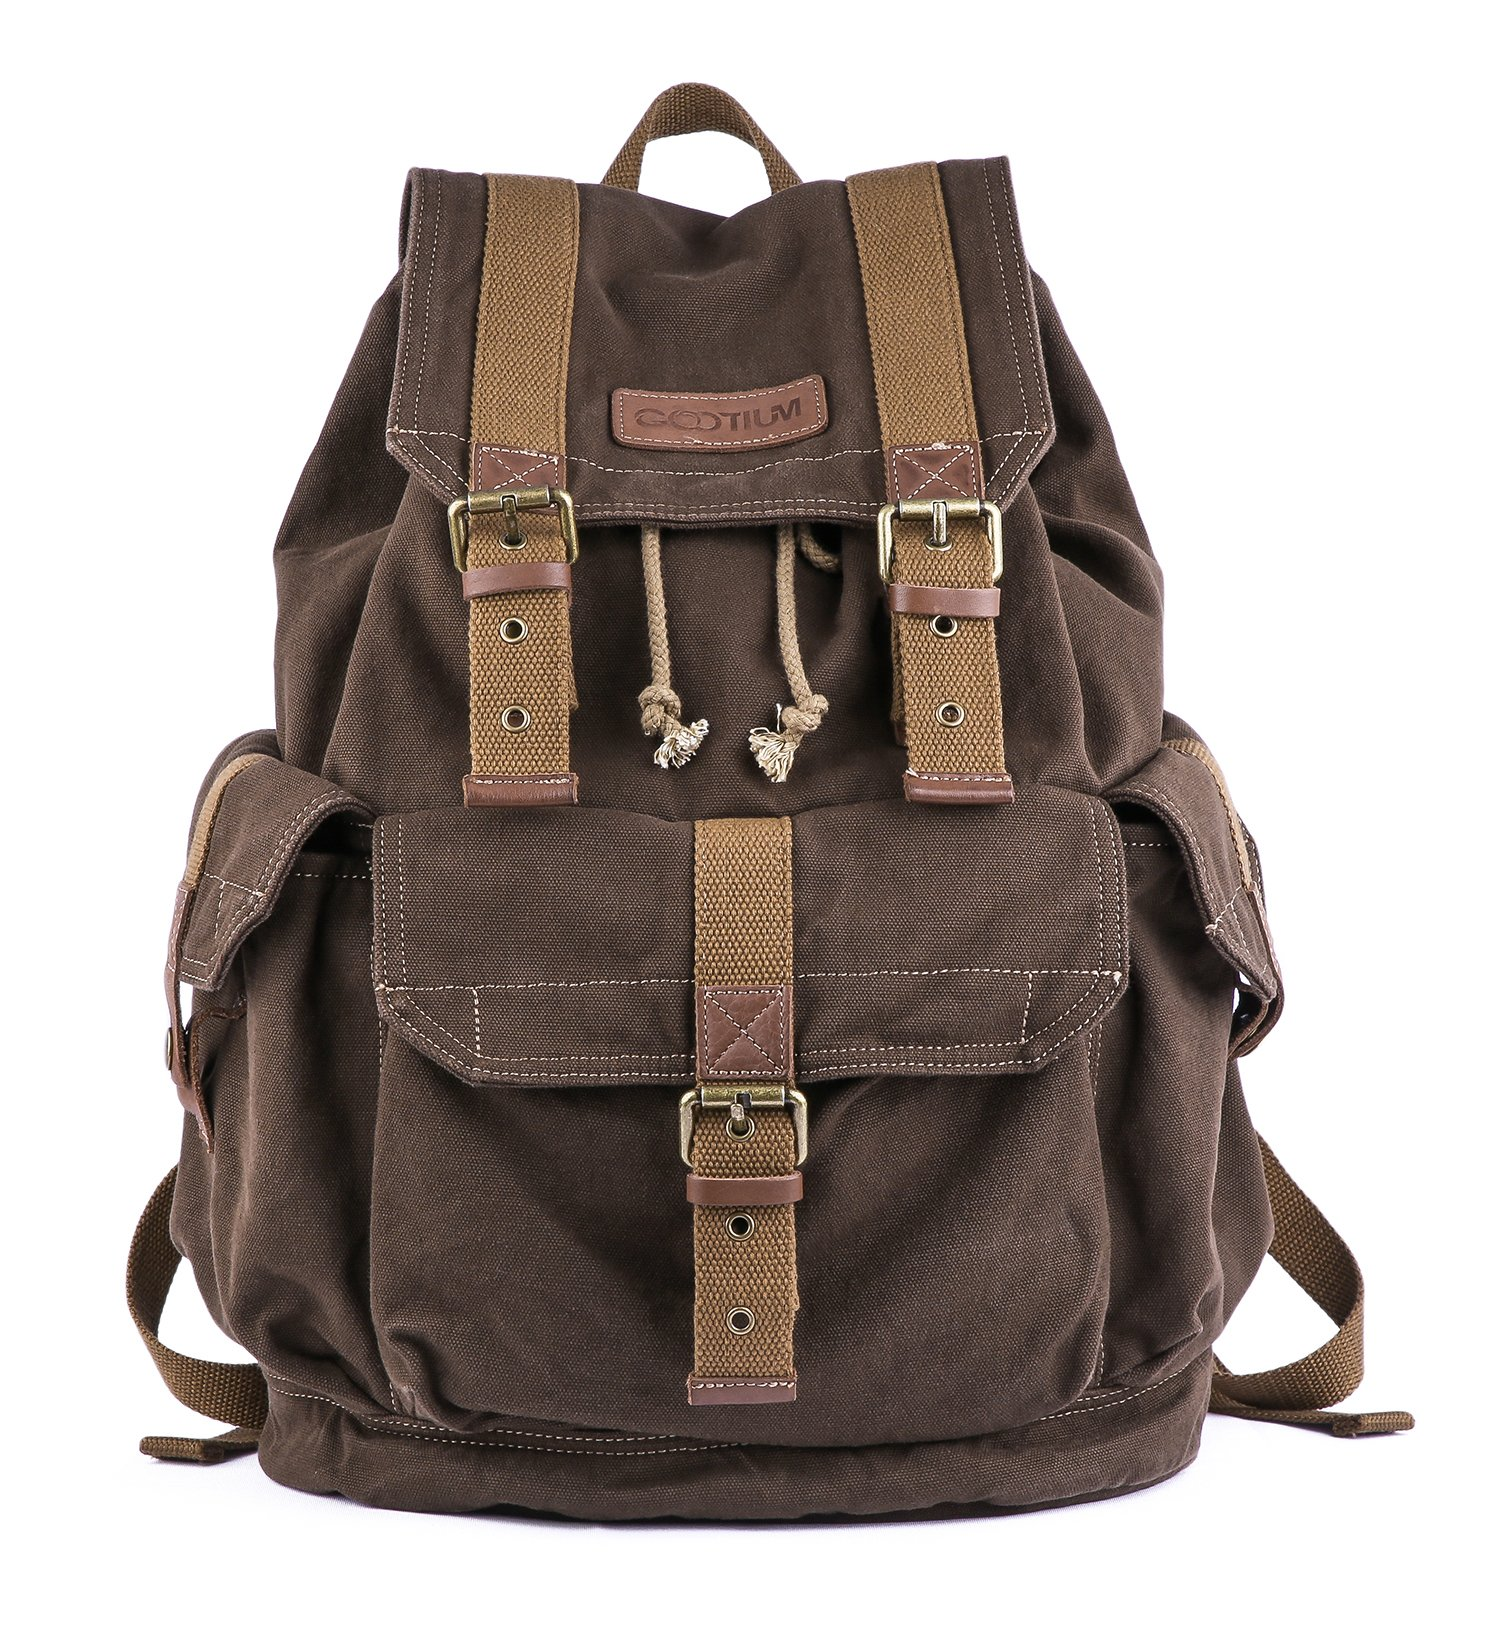 Gootium 21101CF Specially High Density Thick Canvas Backpack Rucksack,Coffee